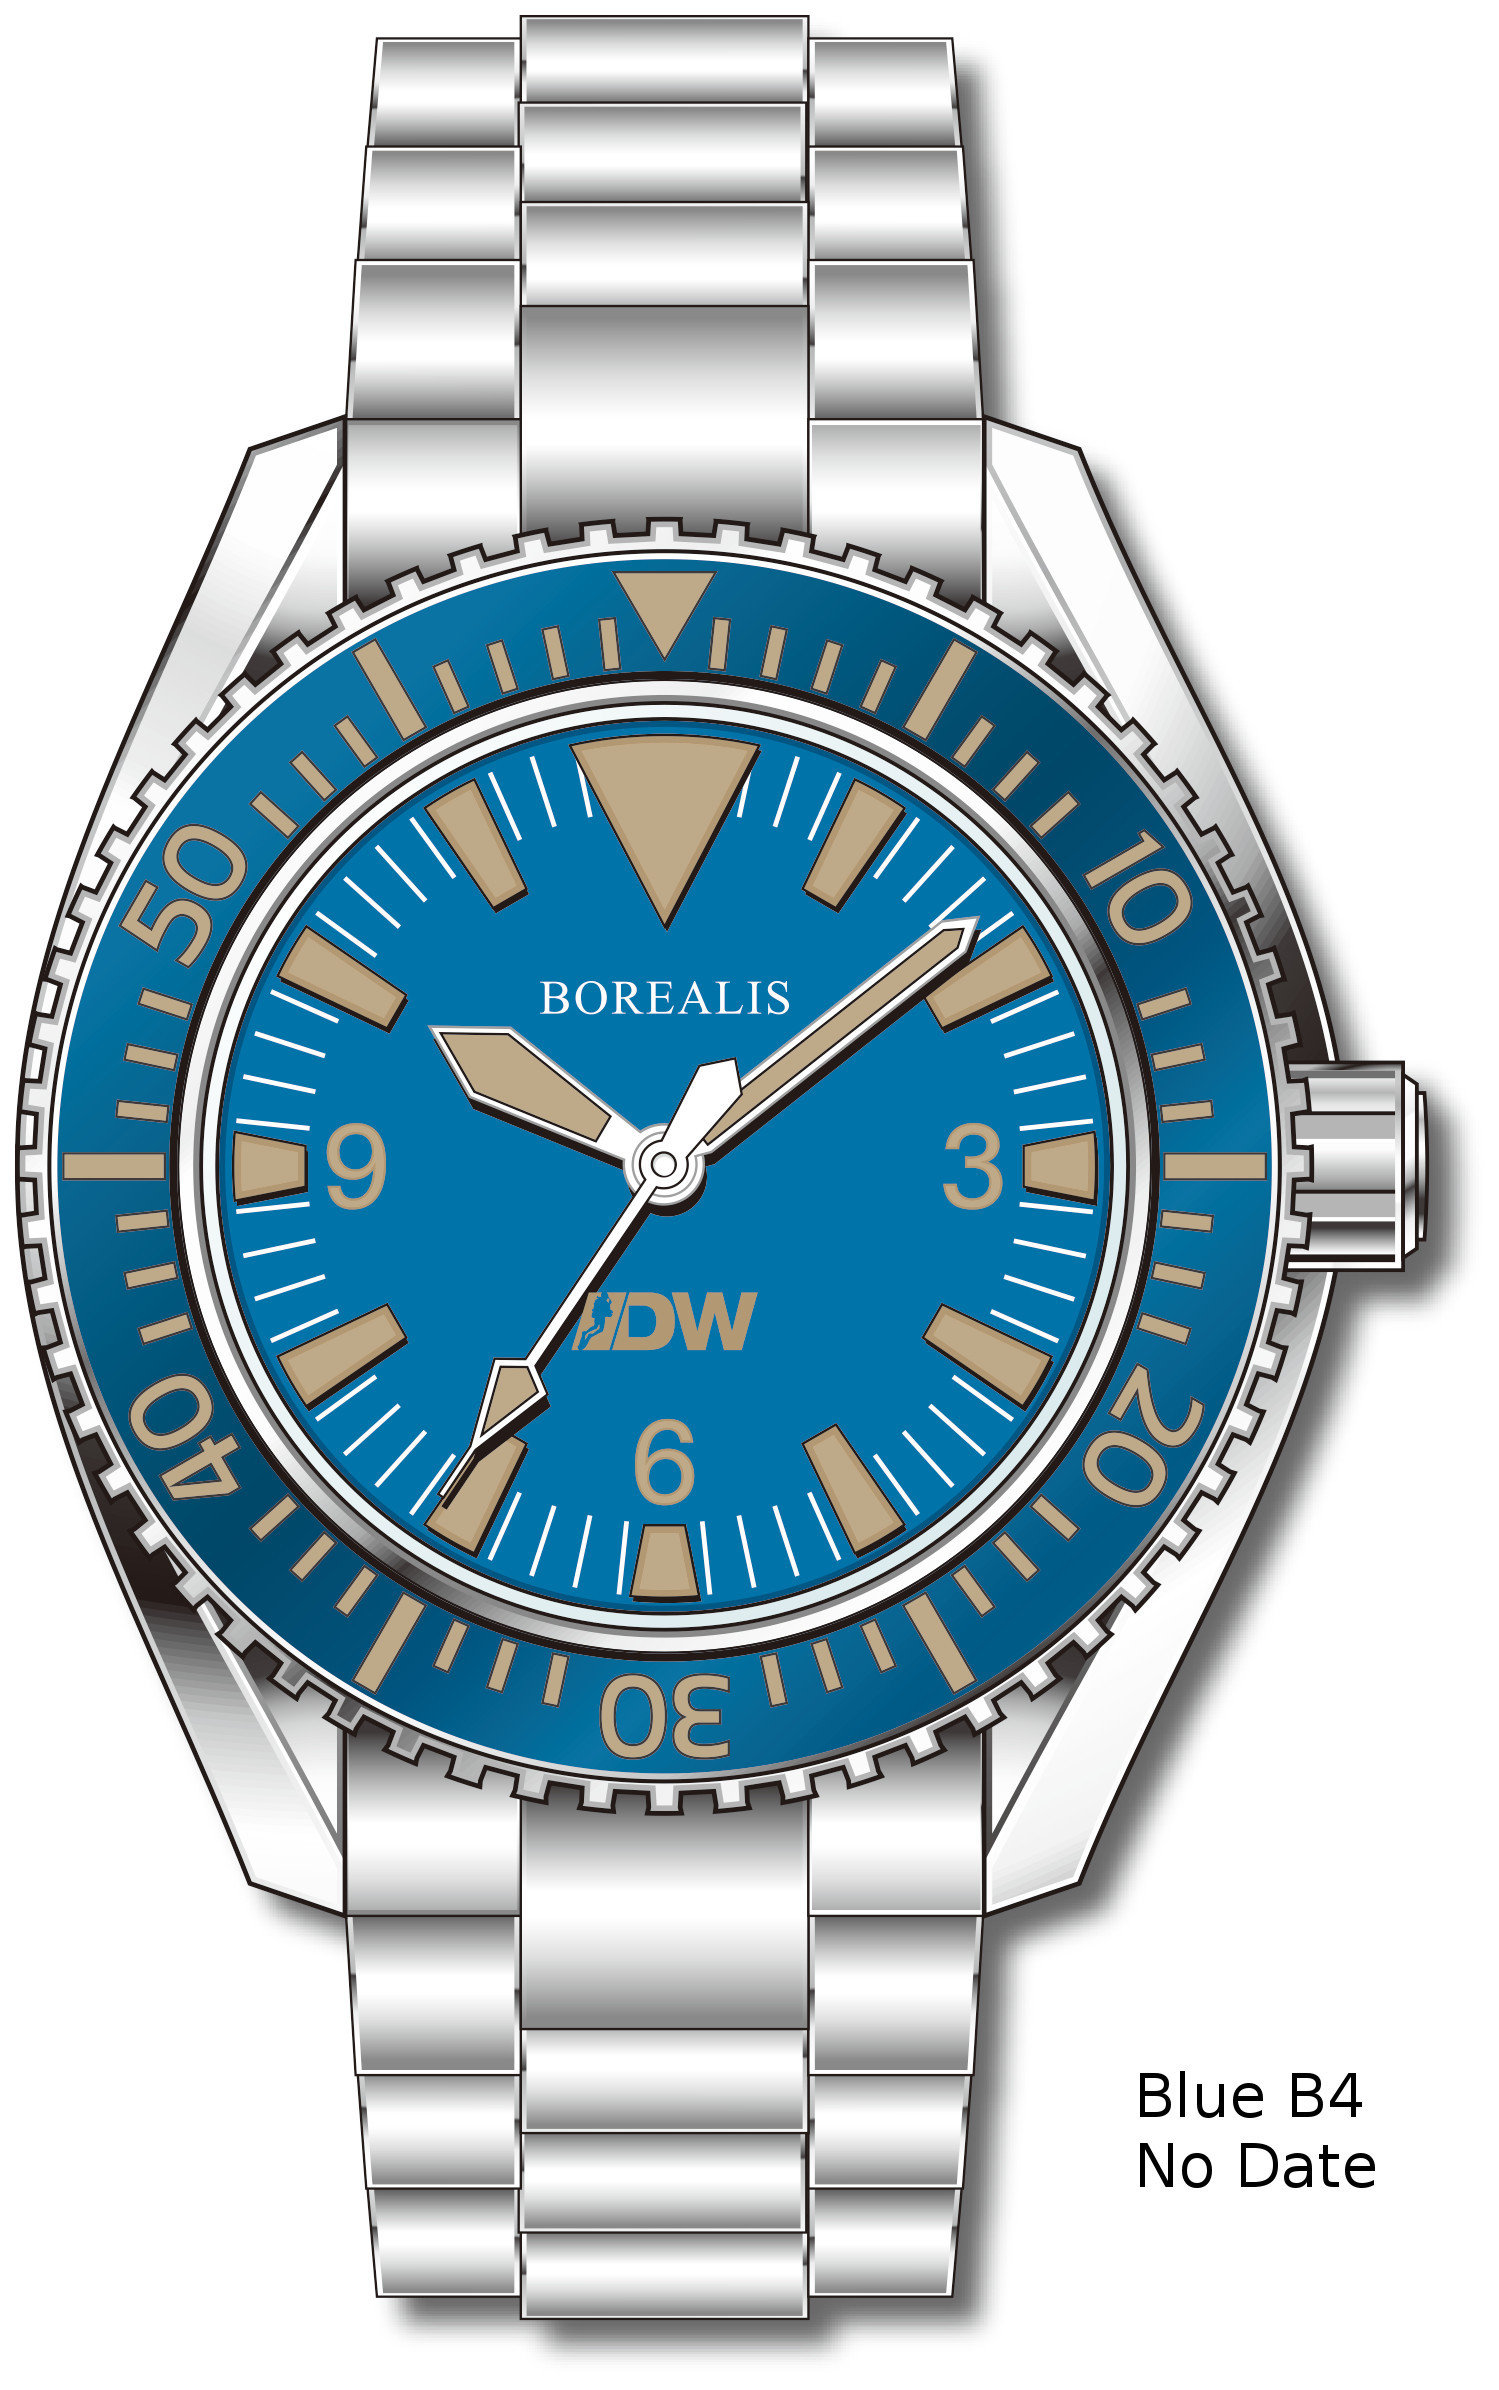 Pre-Order Borealis Estoril 300 for Diver's Watches Facebook Group Blue Dial Big Triangle No Date Blue B4 No Date EDWFBGBLUEB4NDT